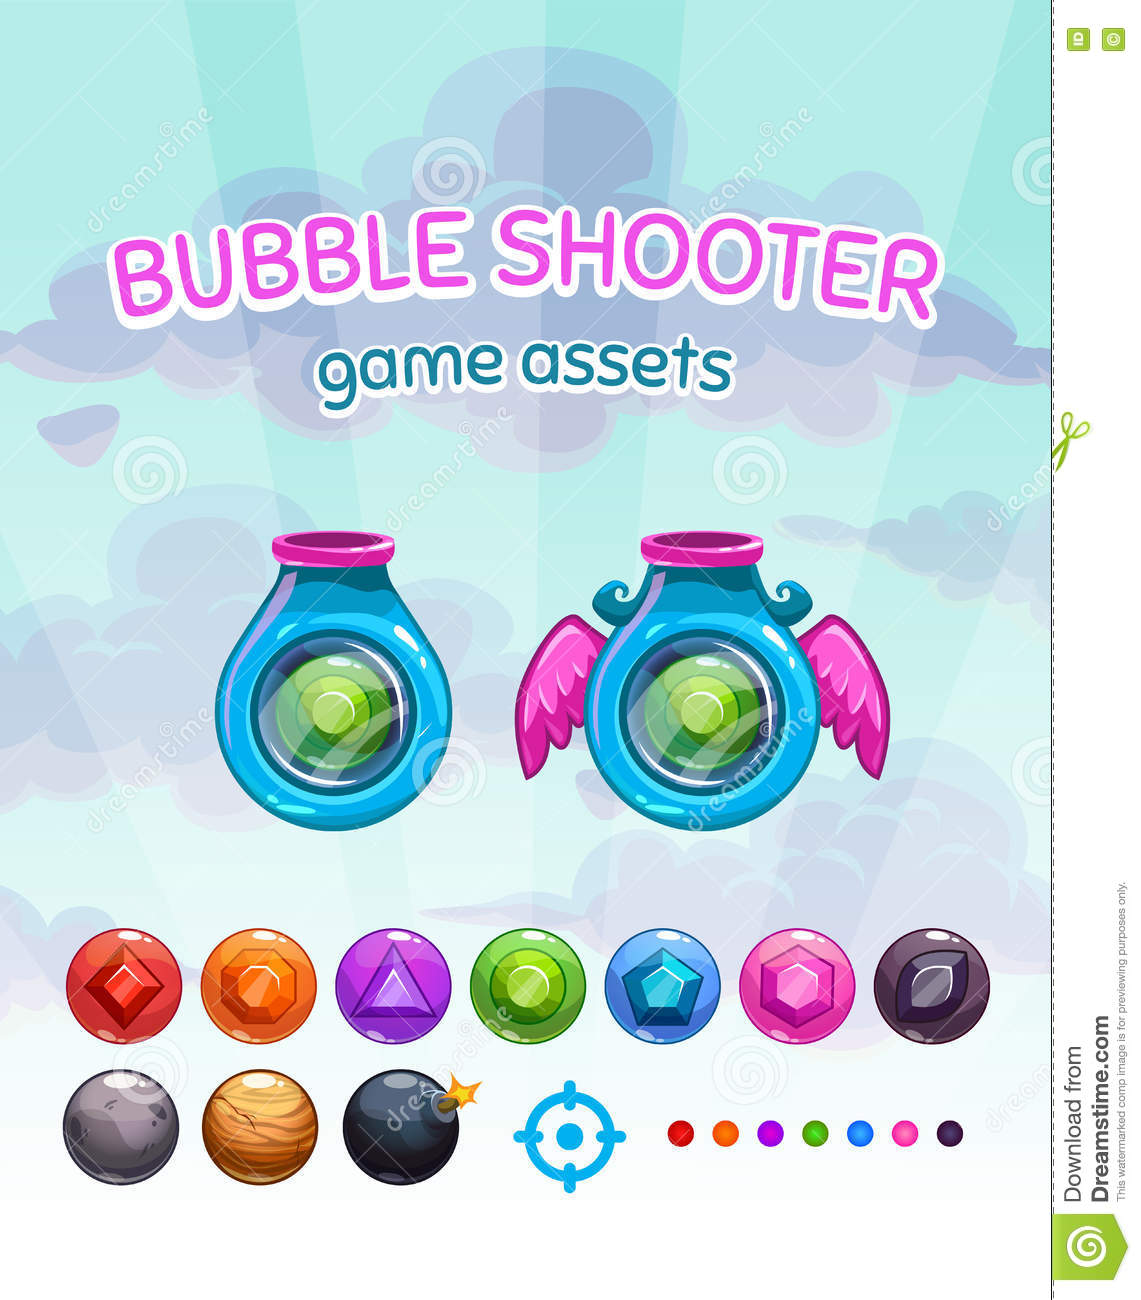 Bubble shooter game assets stock vector  Illustration of round